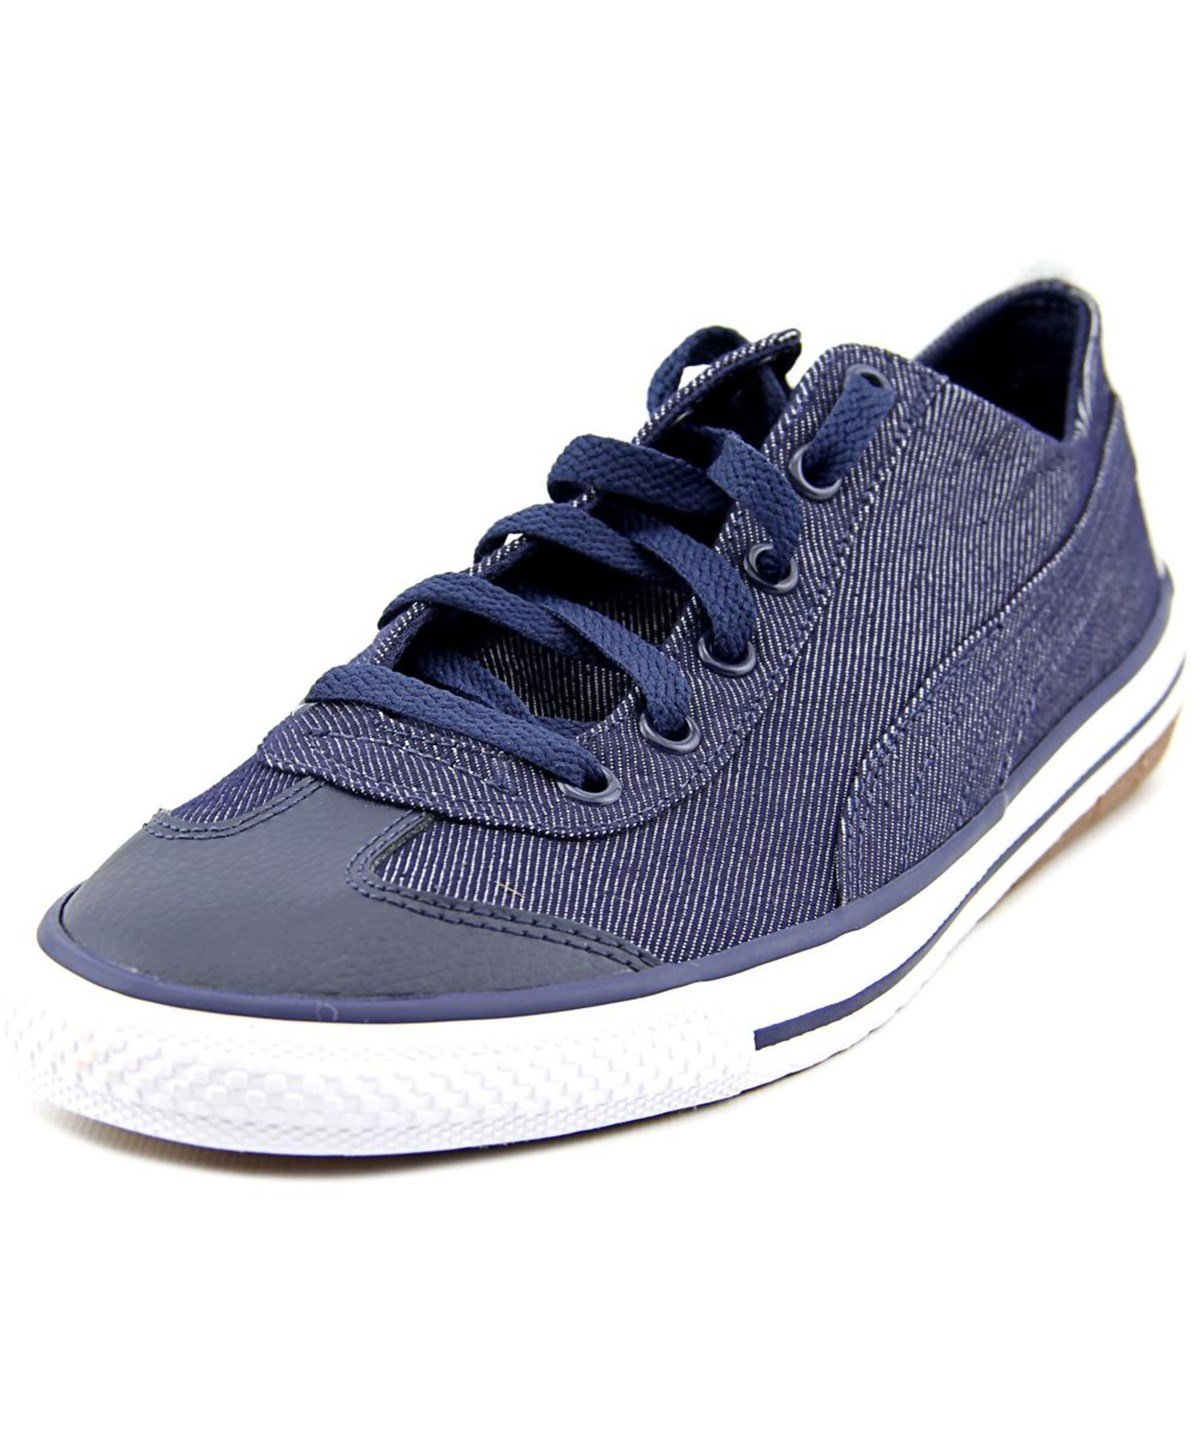 Puma Basket Mid X Dee&Ricky Cr   Round Toe Synthetic  Sneakers In Blue